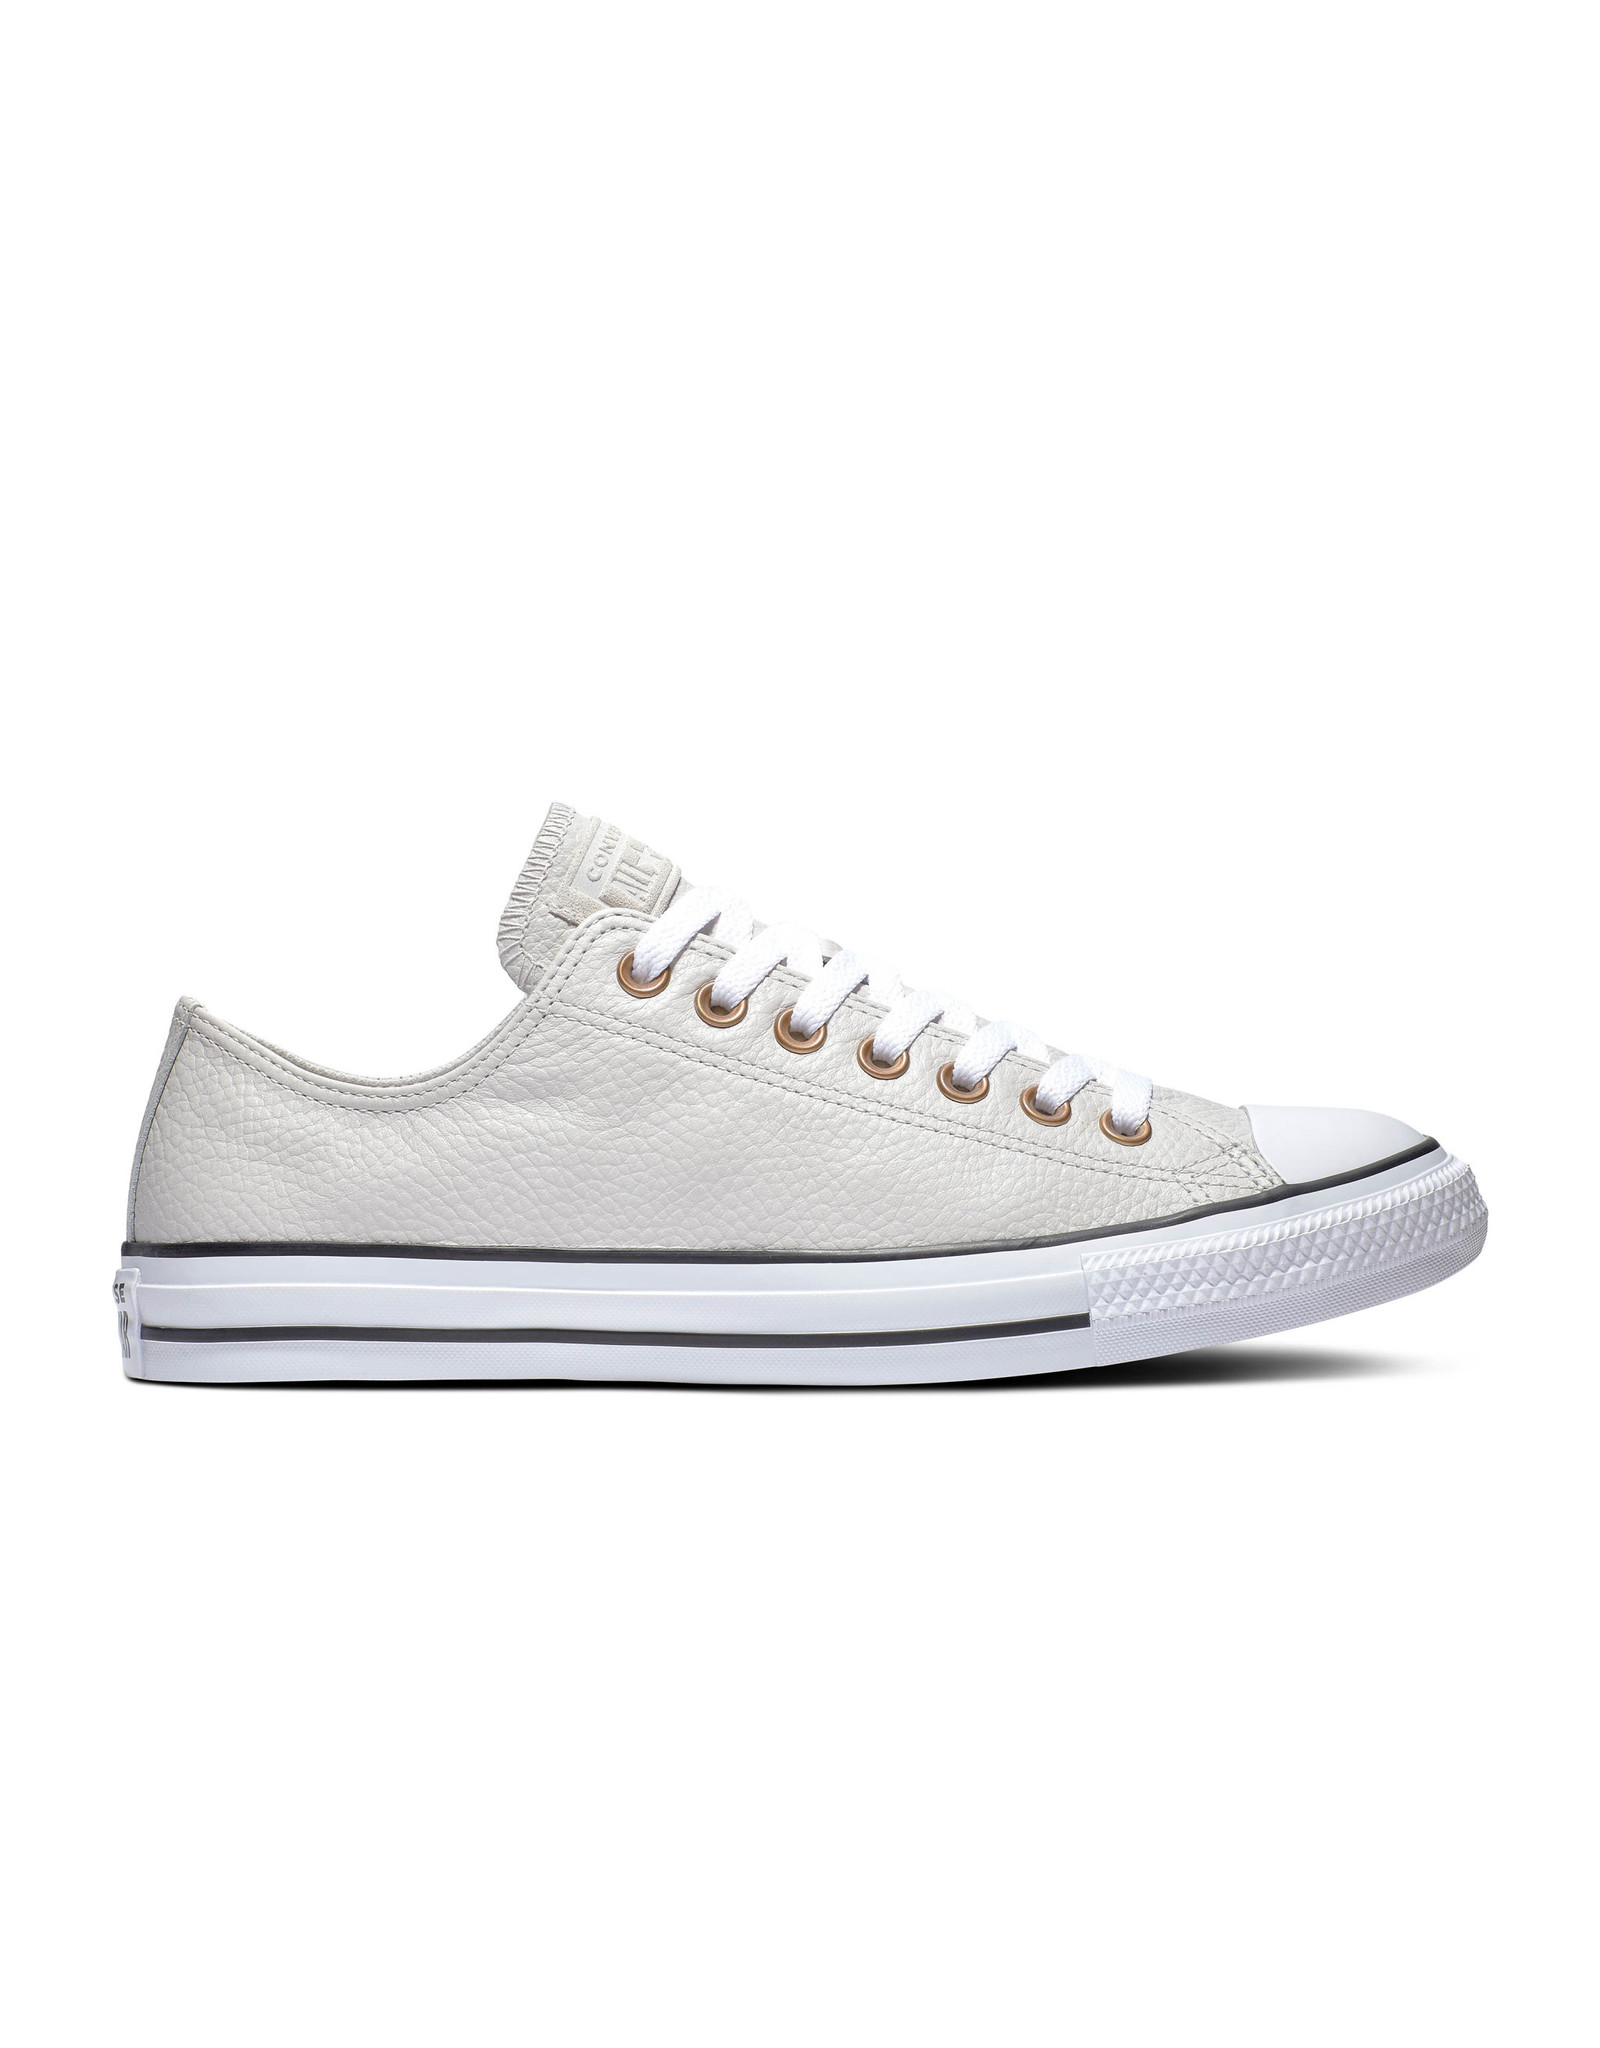 CONVERSE CHUCK TAYLOR ALL STAR OX PALE LEATHER PUTTY/WHITE/BLACK CC13PP-165194C